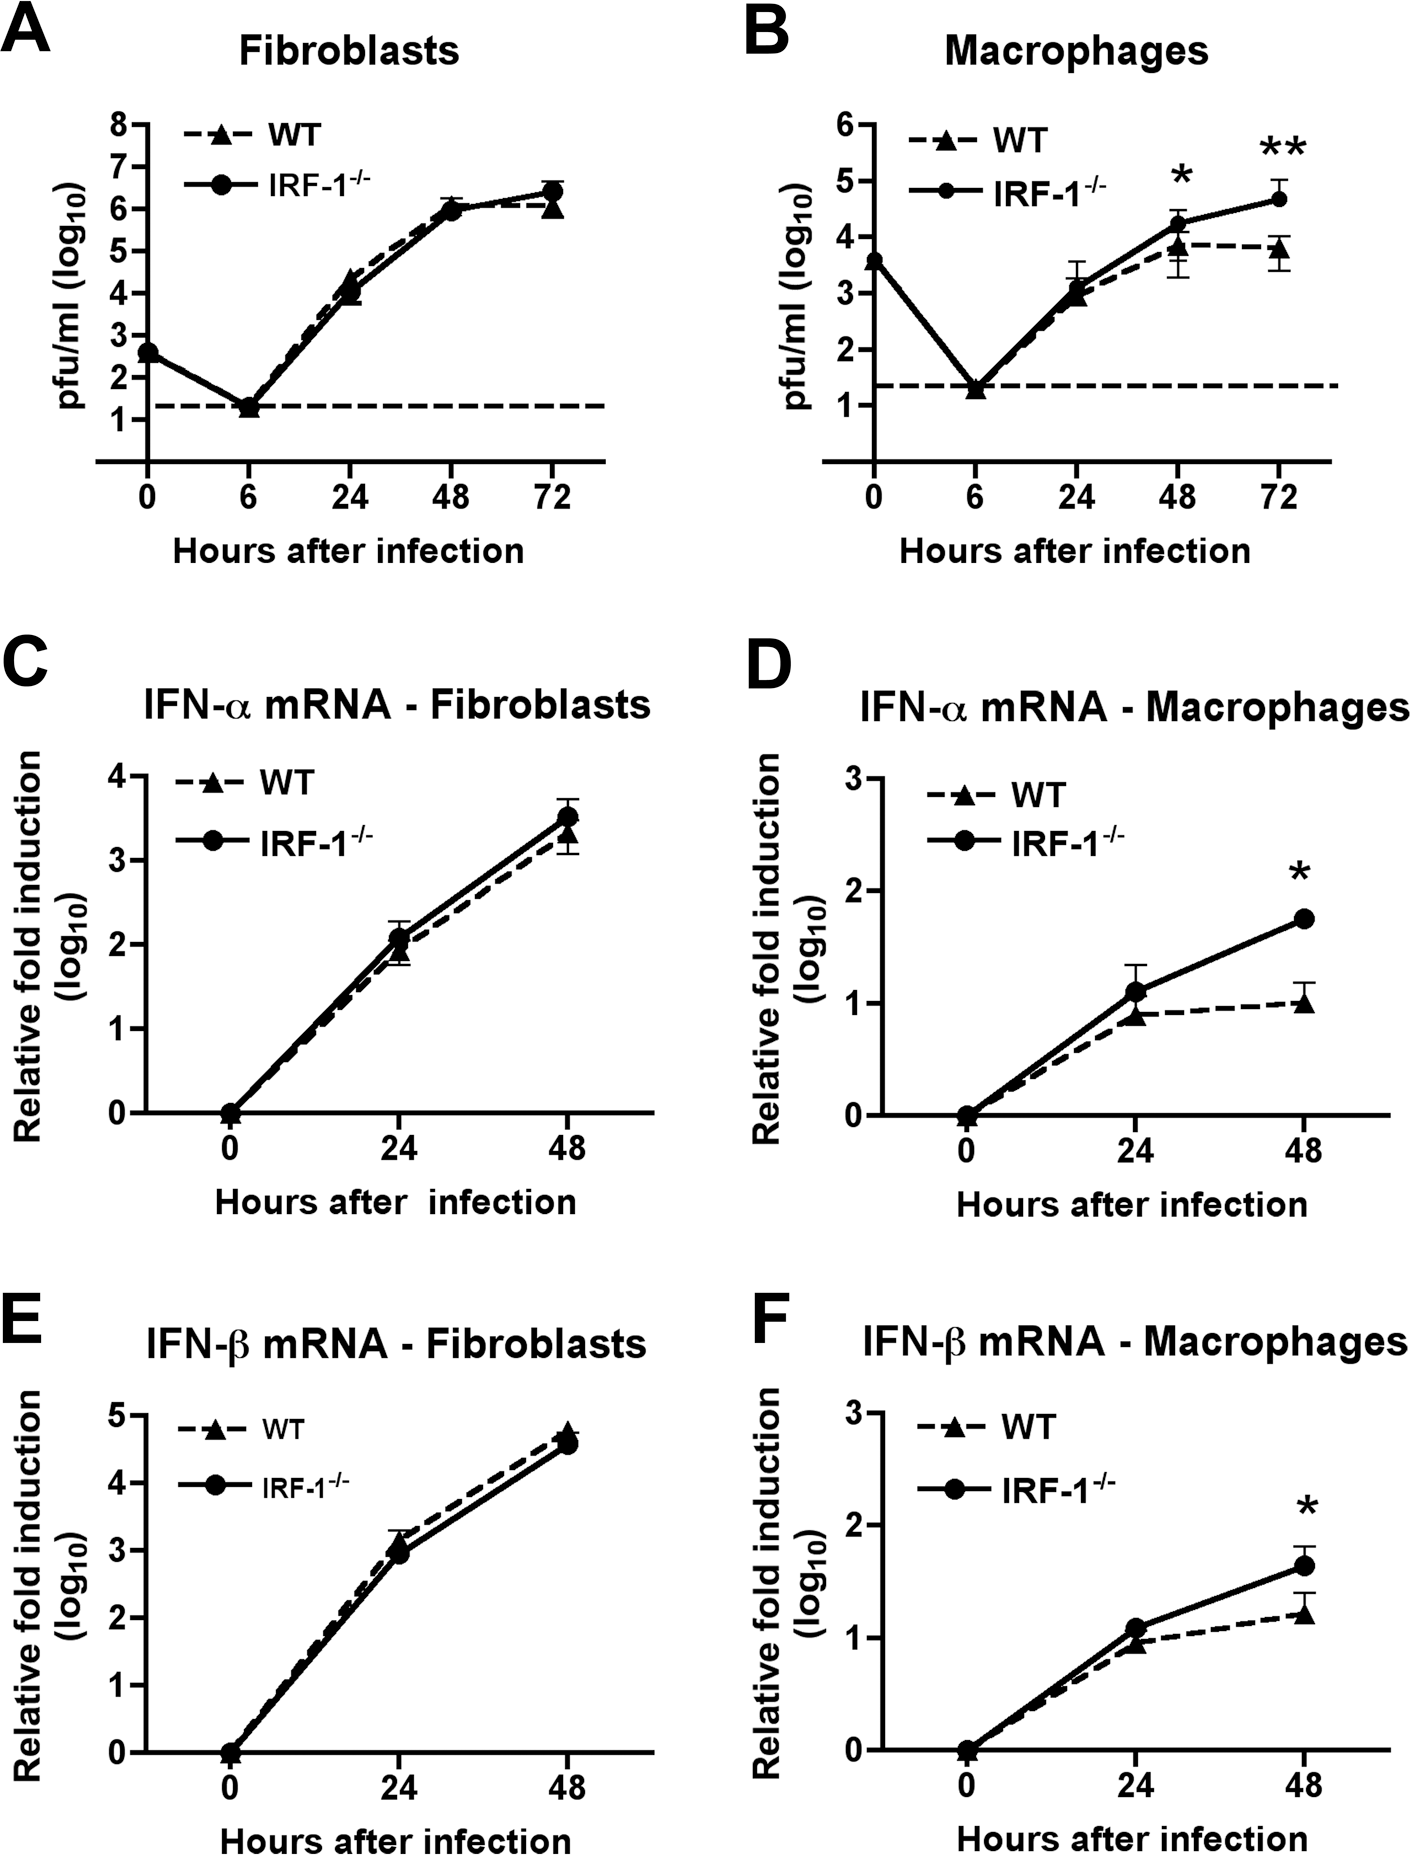 IRF-1 modulates WNV infection in primary Mφ but not in MEF.